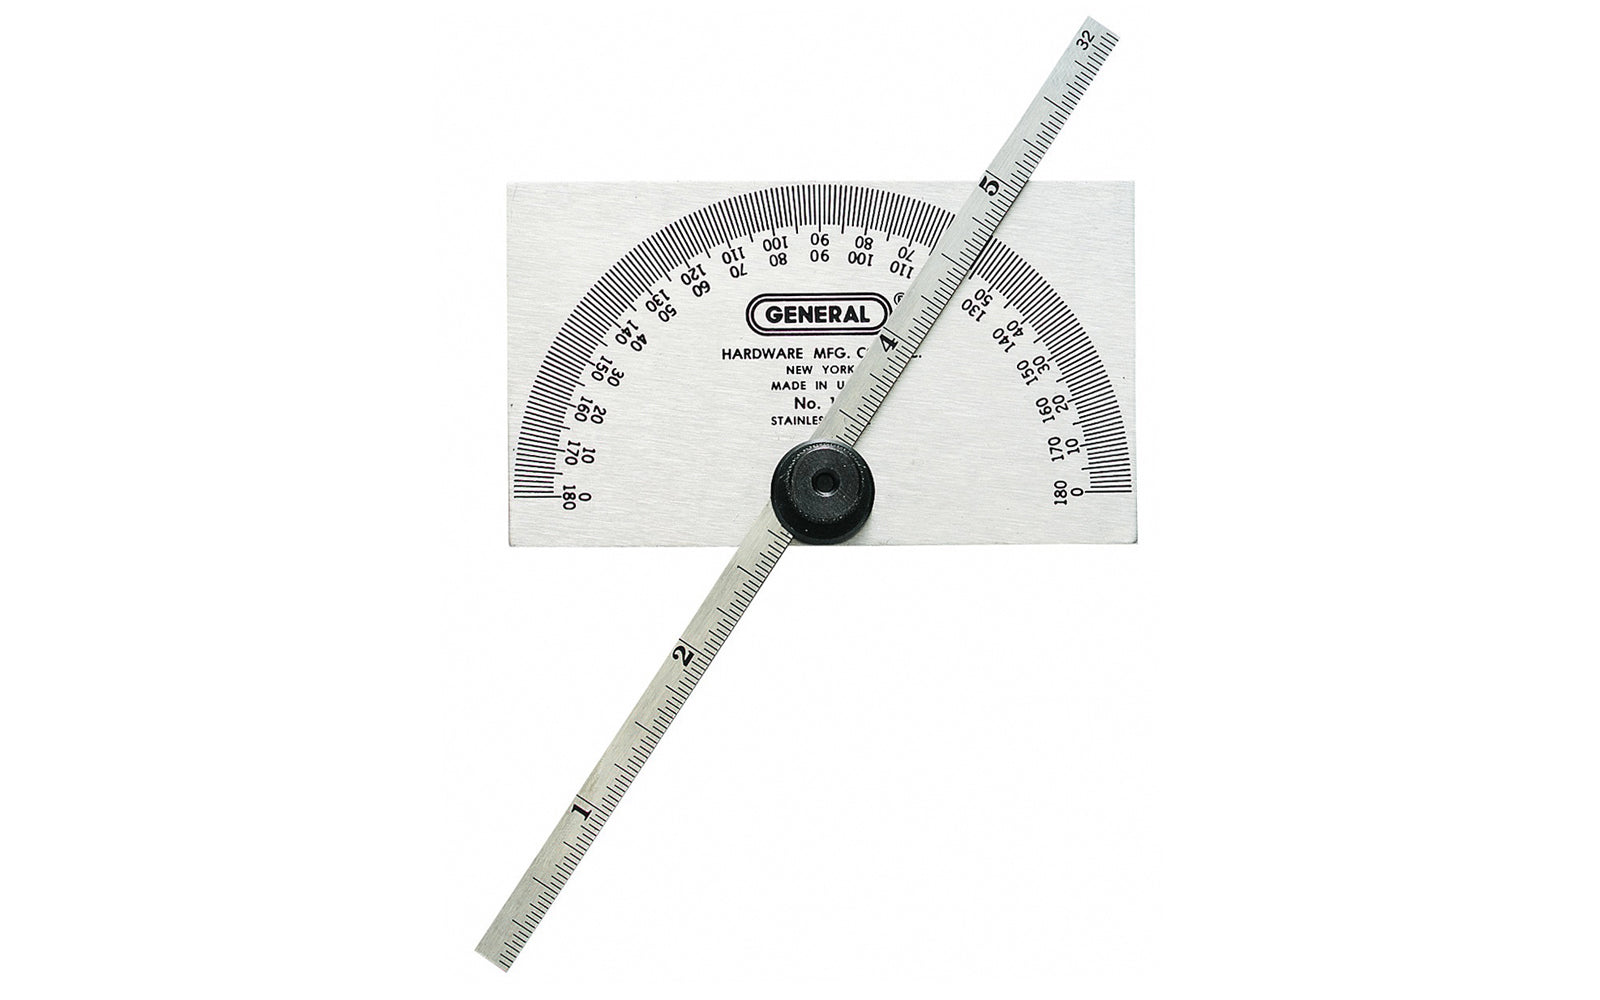 Stainless Steel Protractor & Depth Gauge ~ Square Head - Model No. 19